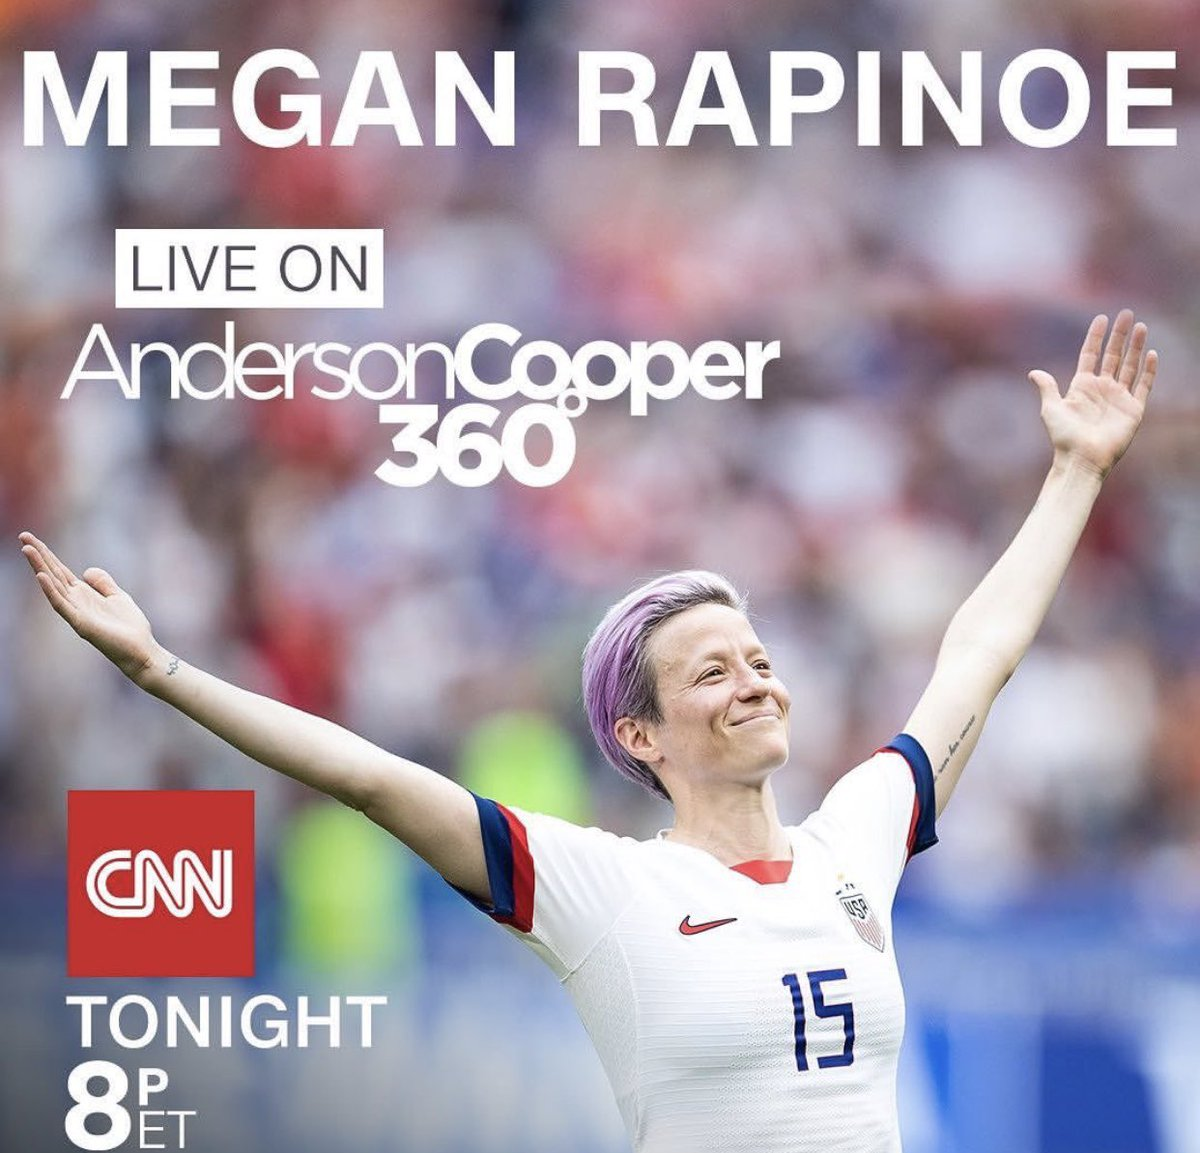 excited to interview #MeganRapinoe  live tonight on @AC360  8pm. what questions would you ask her?